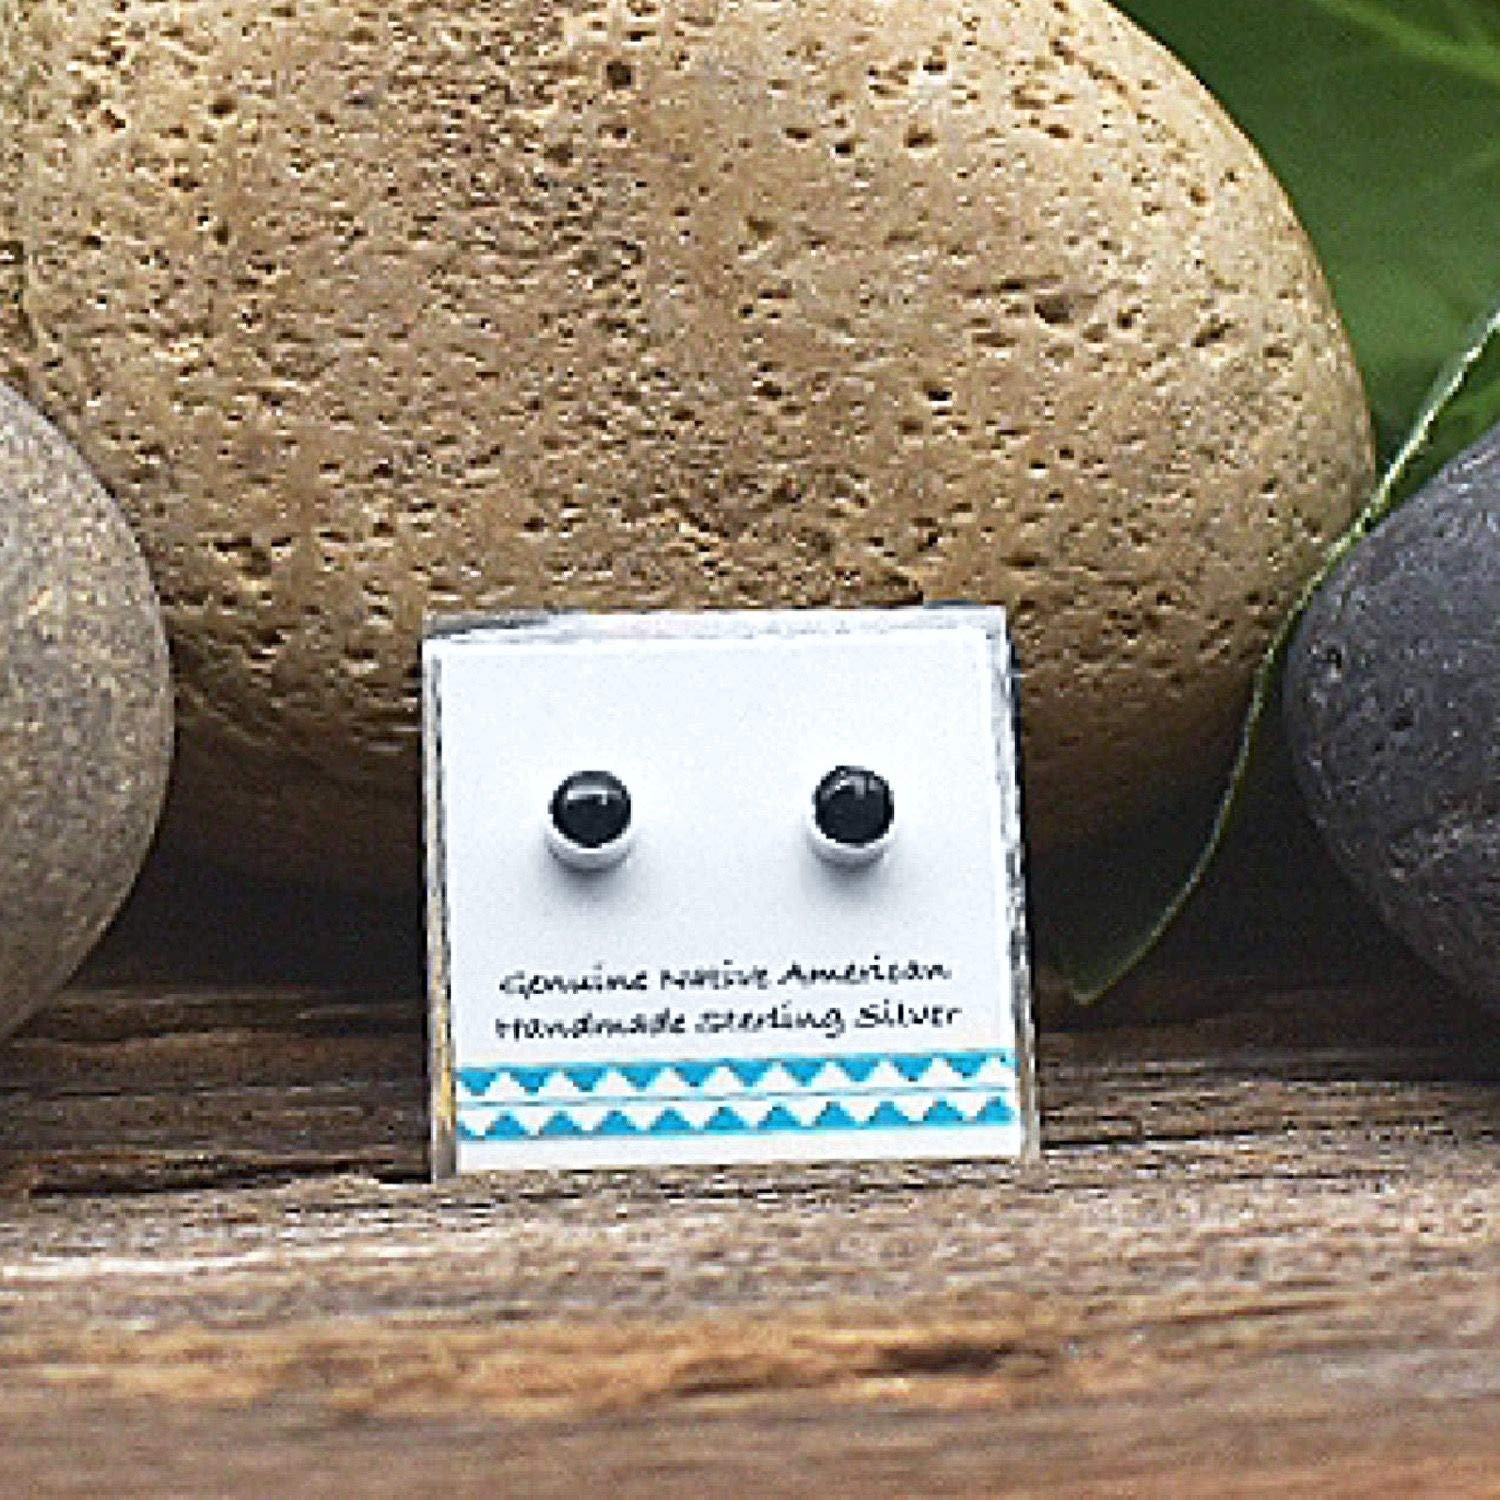 Nickle Free Native American USA Handmade 4mm Genuine Black Onyx Stud Earrings in 925 Sterling Silver Minimalist